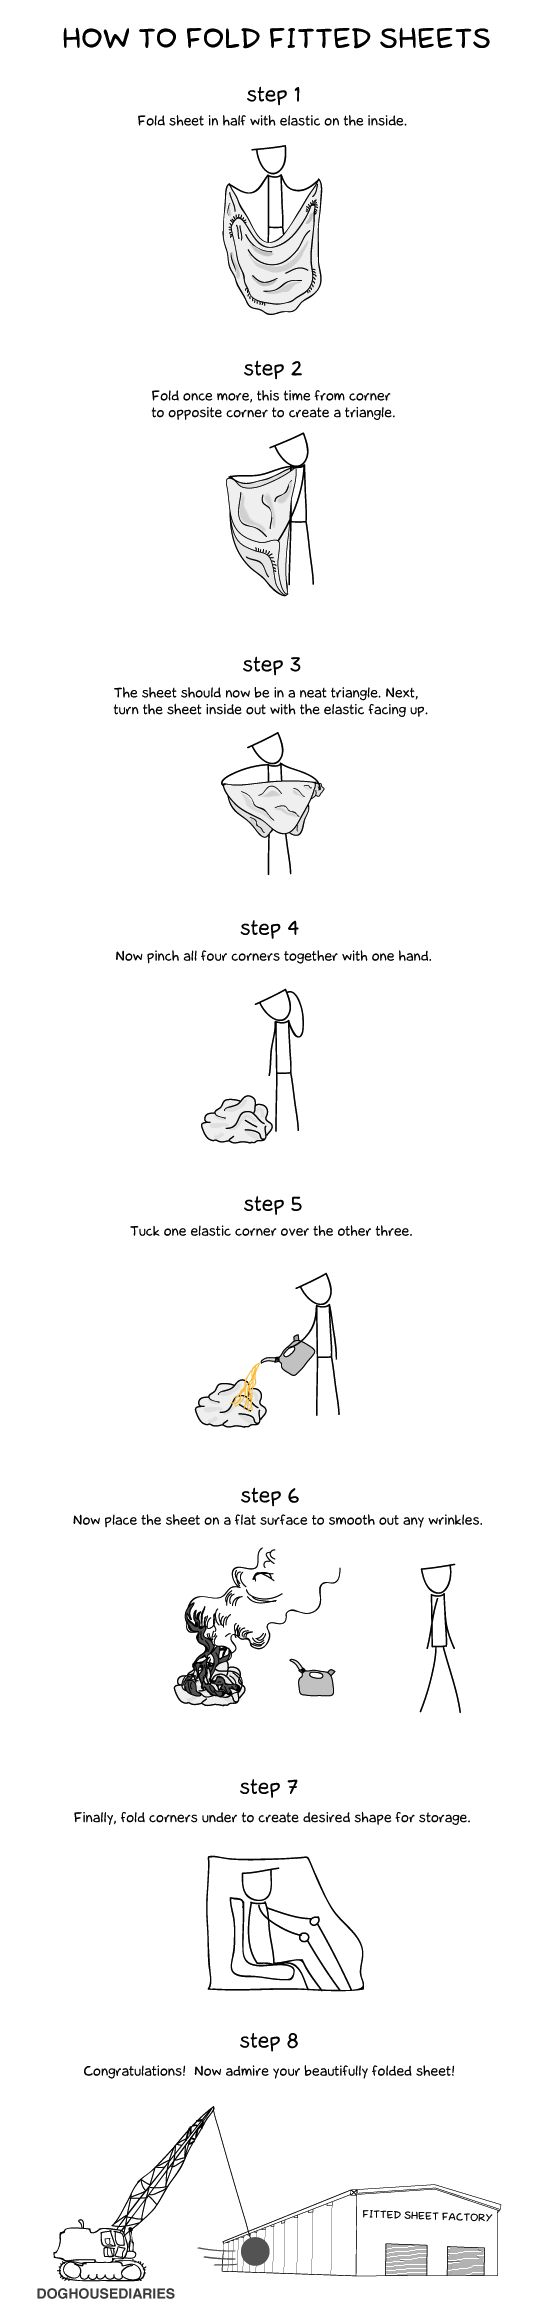 Instructions For Folding a Fitted Sheet